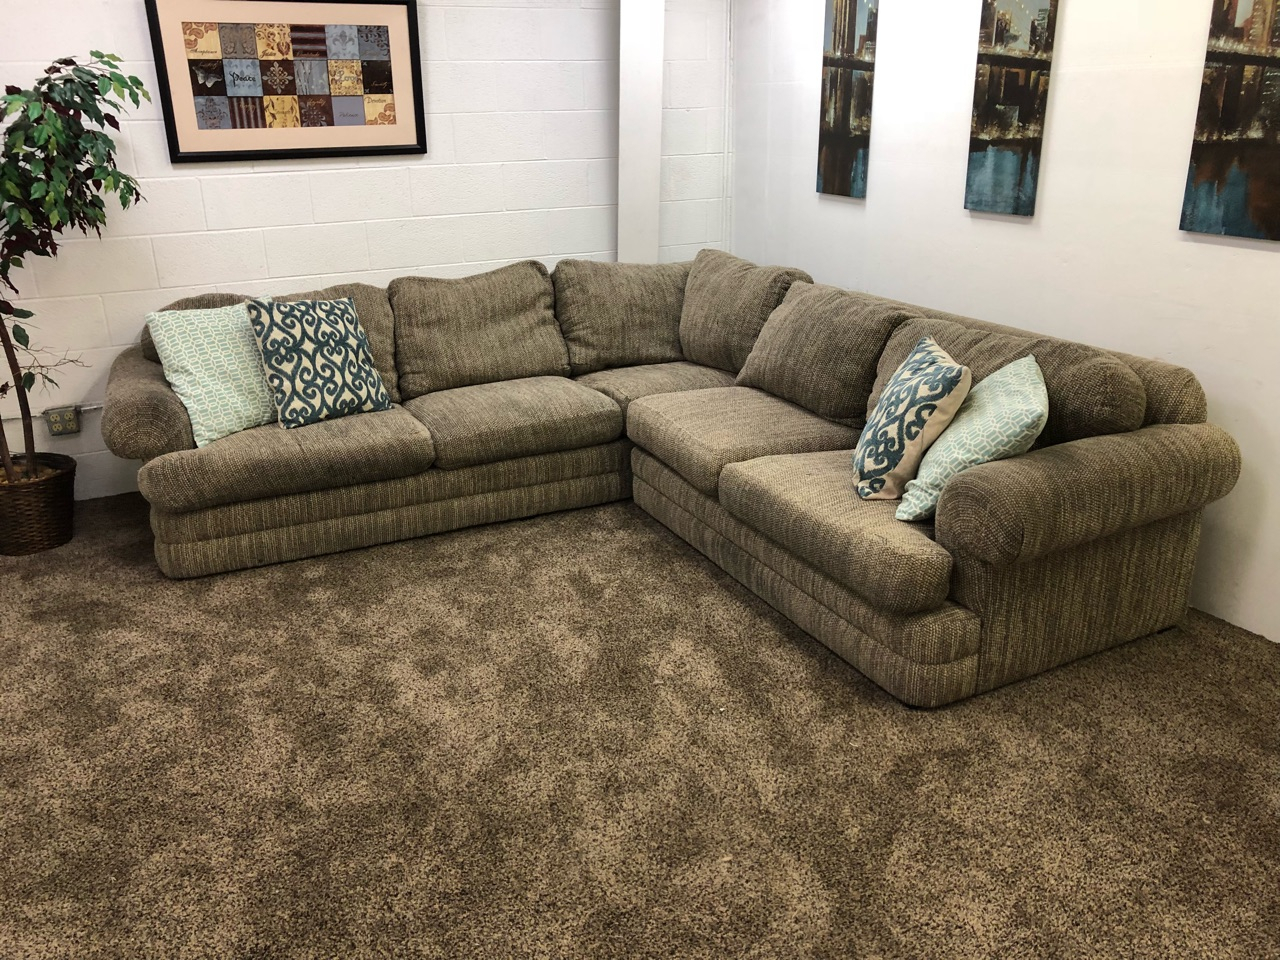 2 Piece Large Grey Tweed Castellano Sectional Sofa Set With Regard To Oversized Sectional Sofas (View 5 of 15)